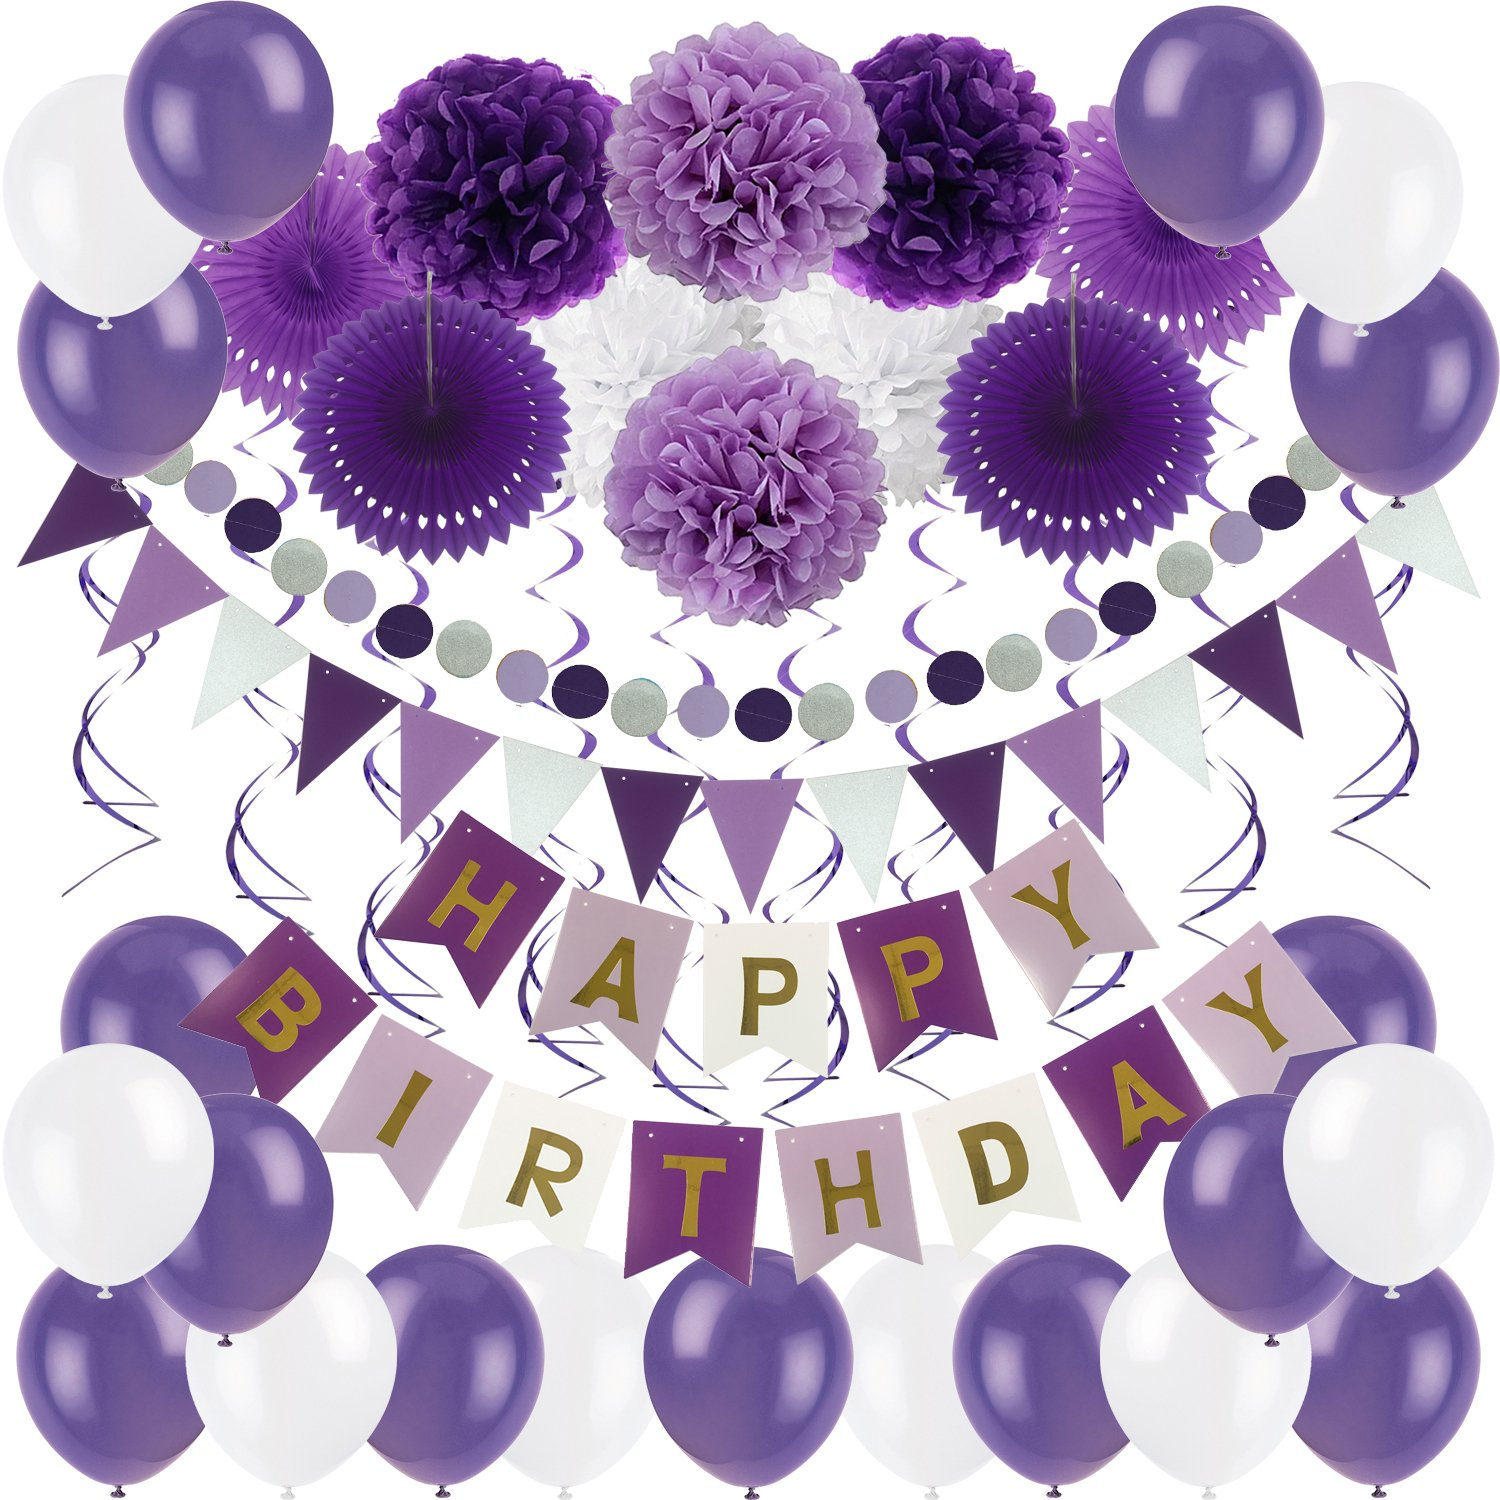 Zerodeco Birthday Decoration Set, Happy Birthday Banner Bunting with 4 Paper Fans Tissue 6 Paper Pom Poms Flower 10 Hanging Swirl and 20 Balloon for Birthday Party Decorations - Purple Lavender White by Zerodeco